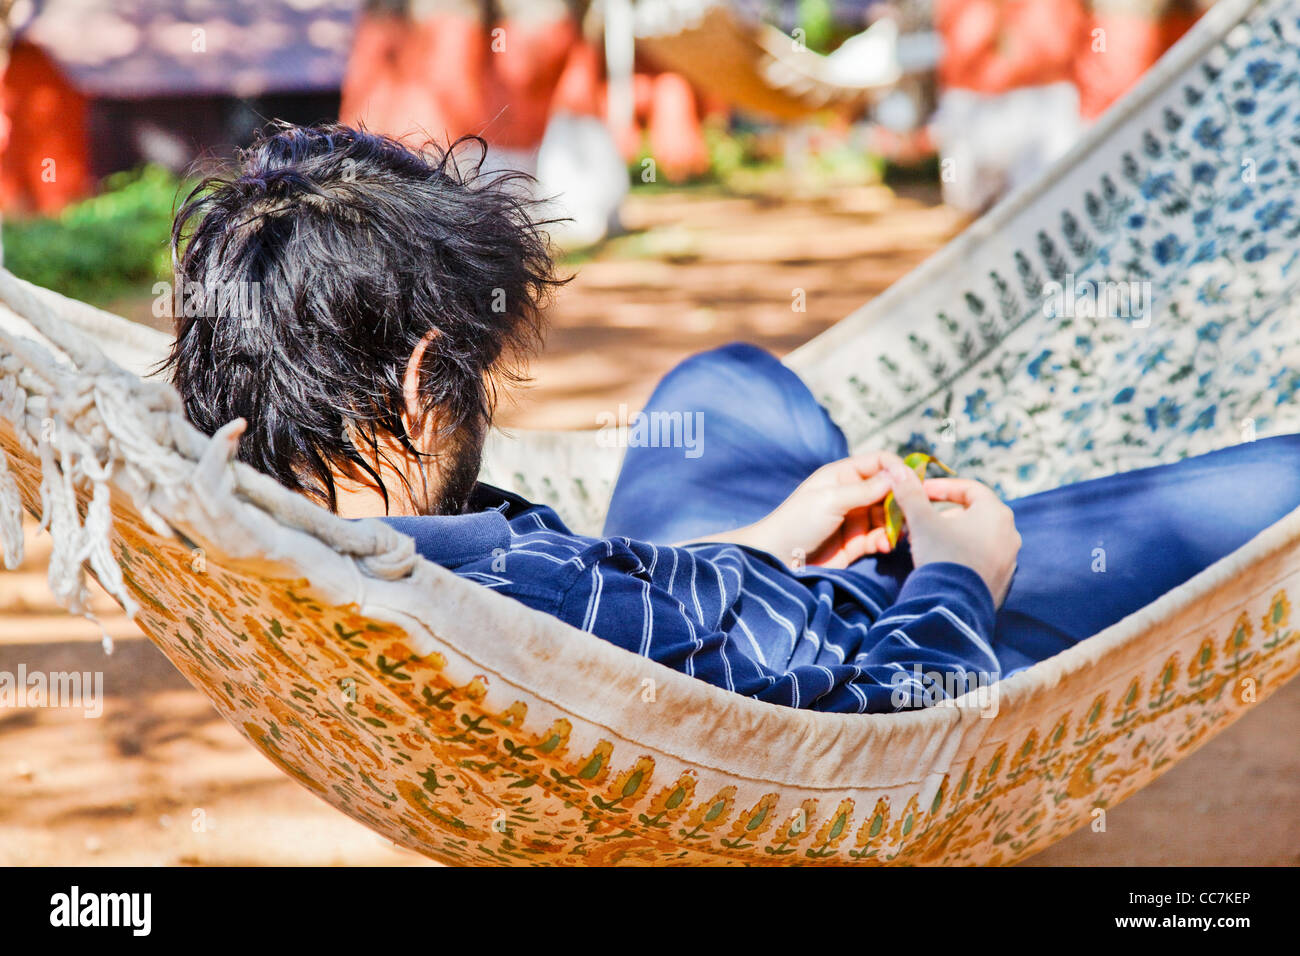 landscape of young man relaxing in a hammock holding dry fallen leaf garden backdrop, crop margins and negative - Stock Image